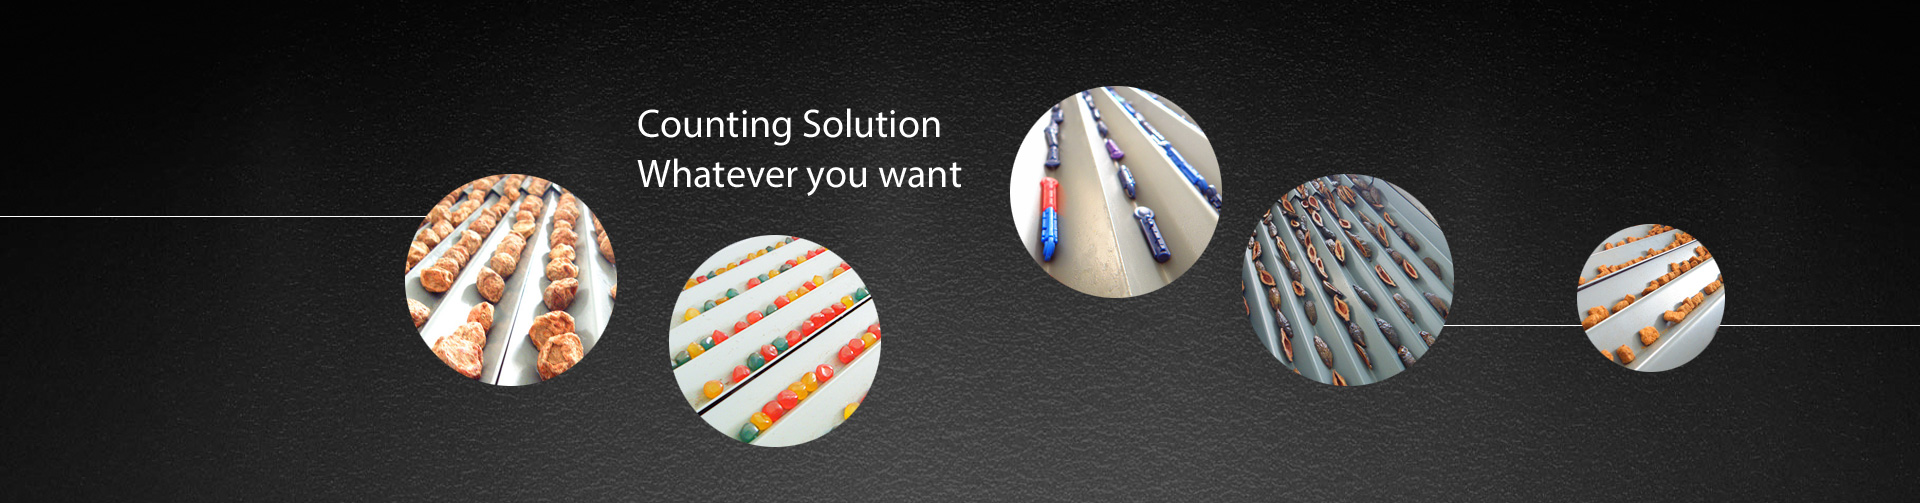 Counting Solution